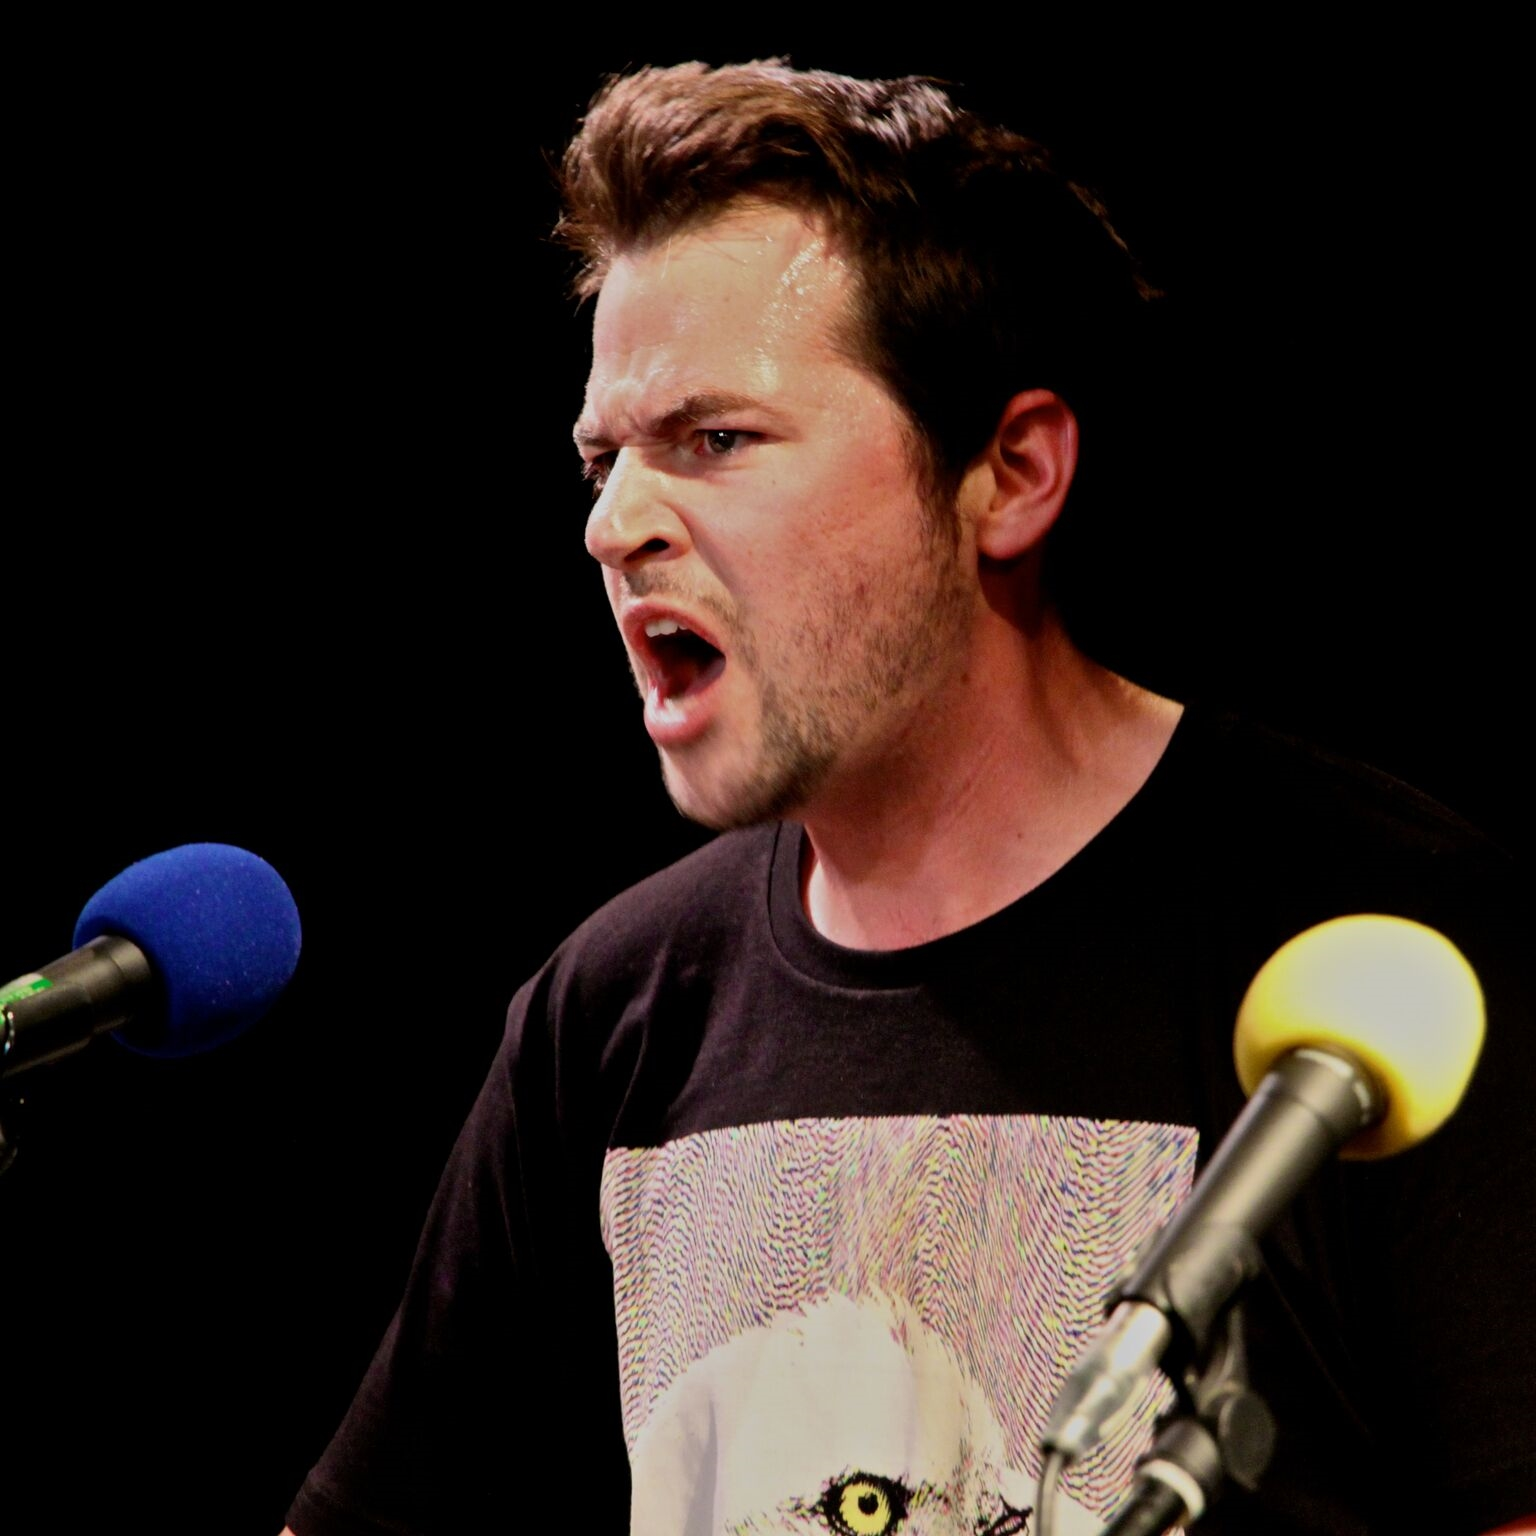 David Arrondelle - Hector    David regularly performs for stage, screen and the radio as a core member of triple award winning sketch troupe  Casual Violence  - he's been performing as Hector with the group since 2012! With Casual Violence, David has starred on BBC Radio 4 and performed award winning, sell-out run shows at the Soho Theatre, the Lowry, the Leicester Square Theatre, the Vault Festival, and the Edinburgh / Brighton Fringes.